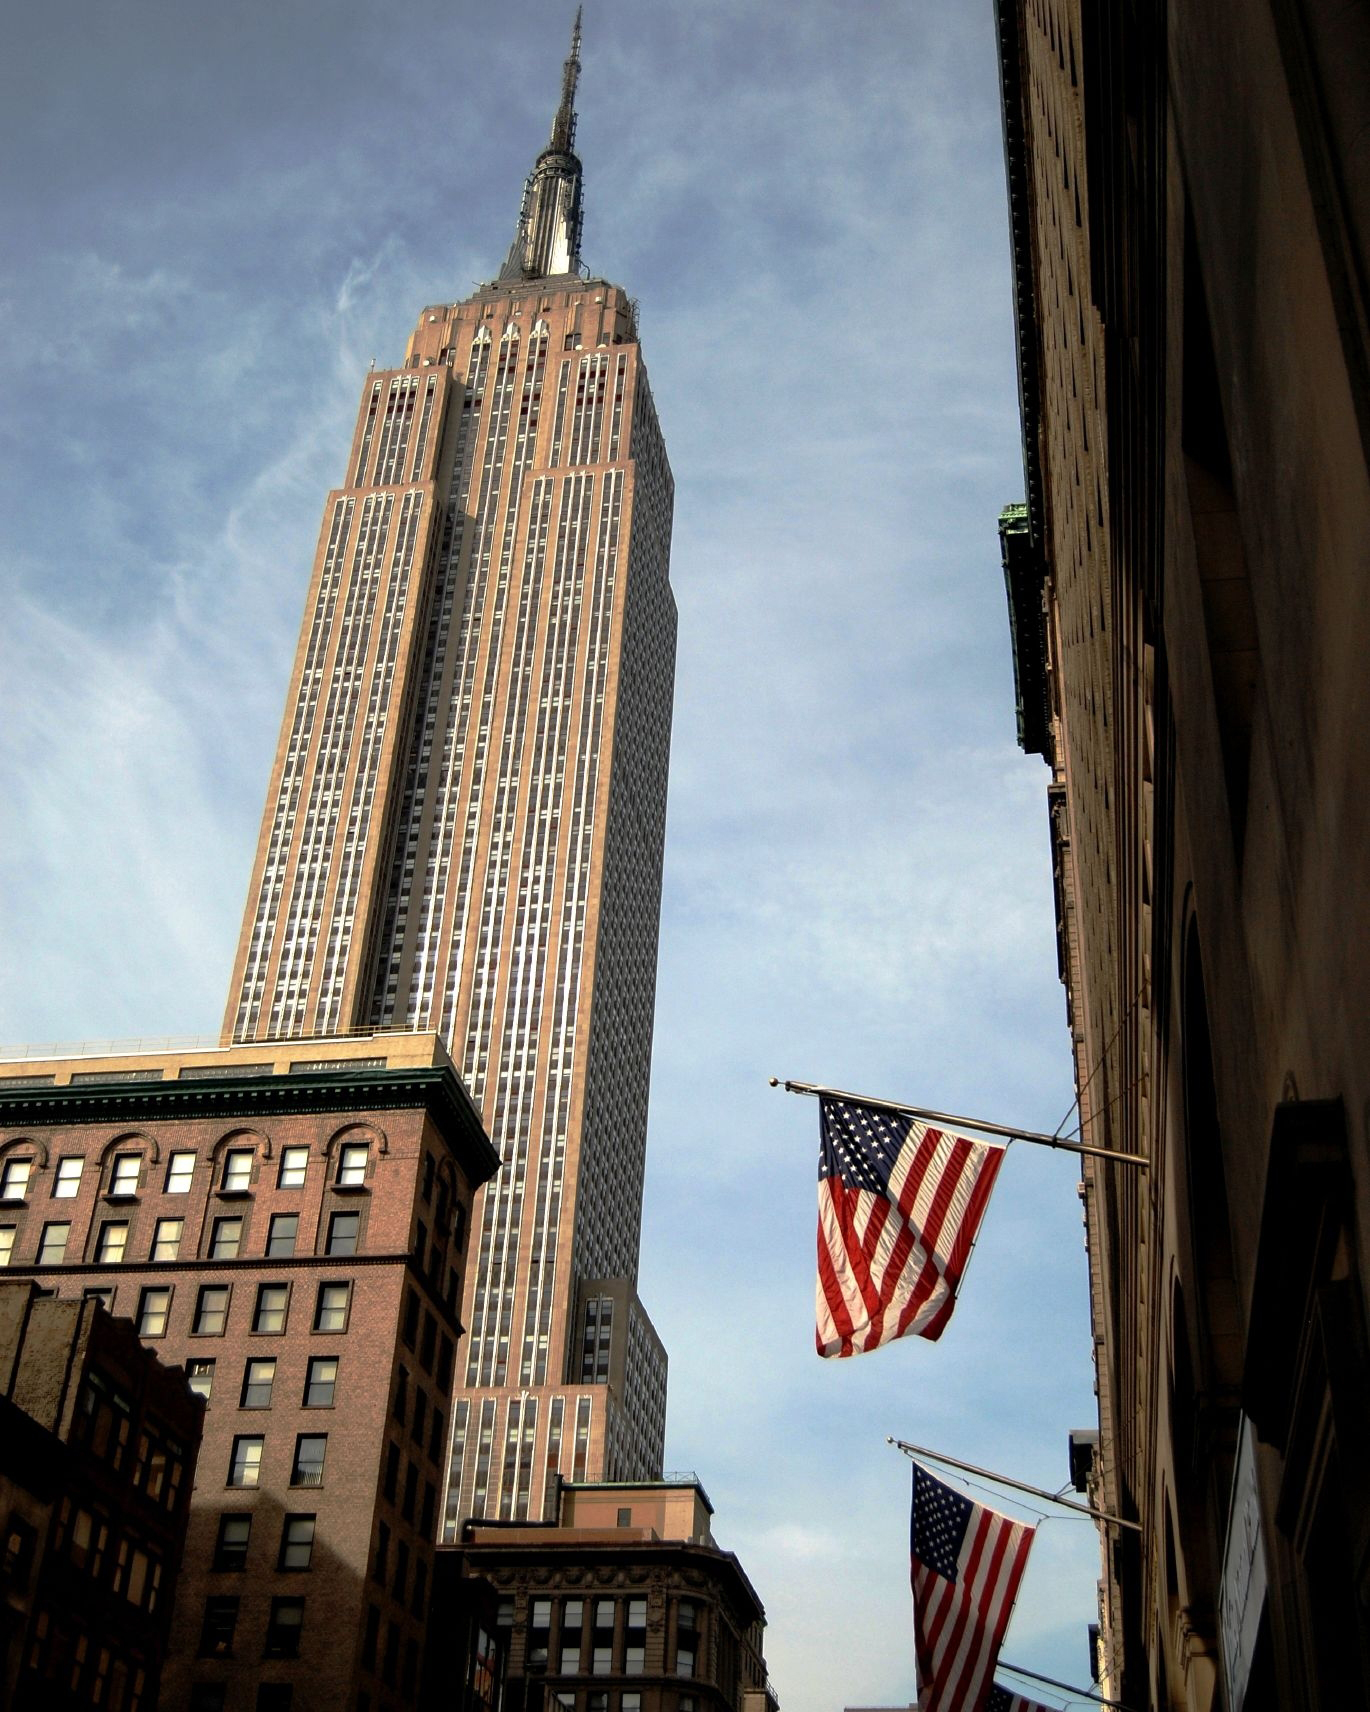 nyc-proposal-spot-empire-state-building-from-street-1114.jpg